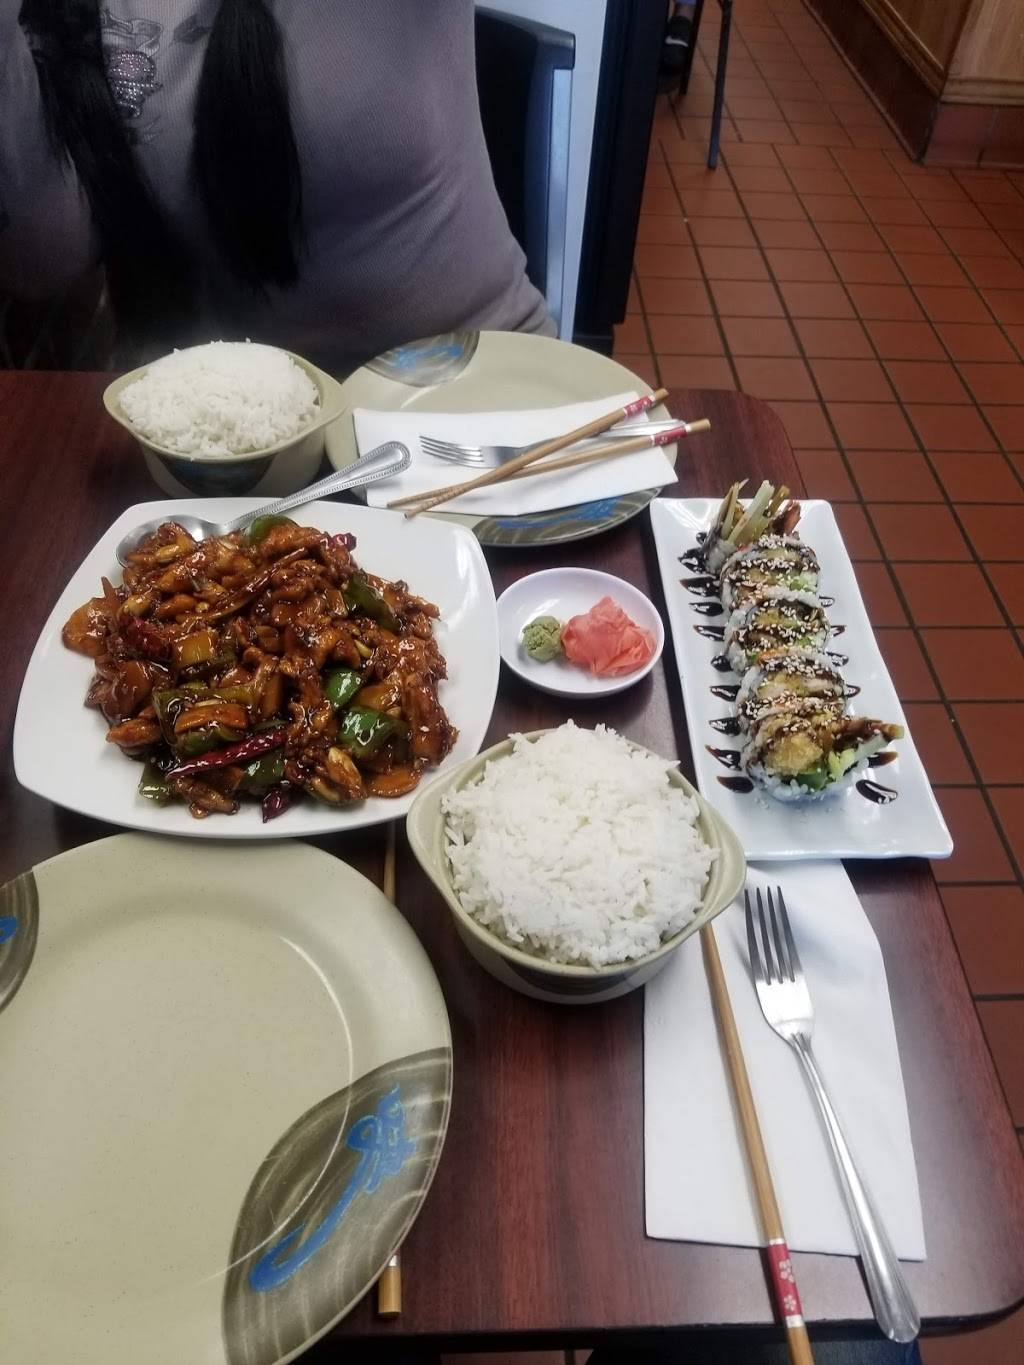 Asia Kitchen - meal delivery  | Photo 8 of 9 | Address: 11279 Venice Blvd, Los Angeles, CA 90066, USA | Phone: (310) 915-0015